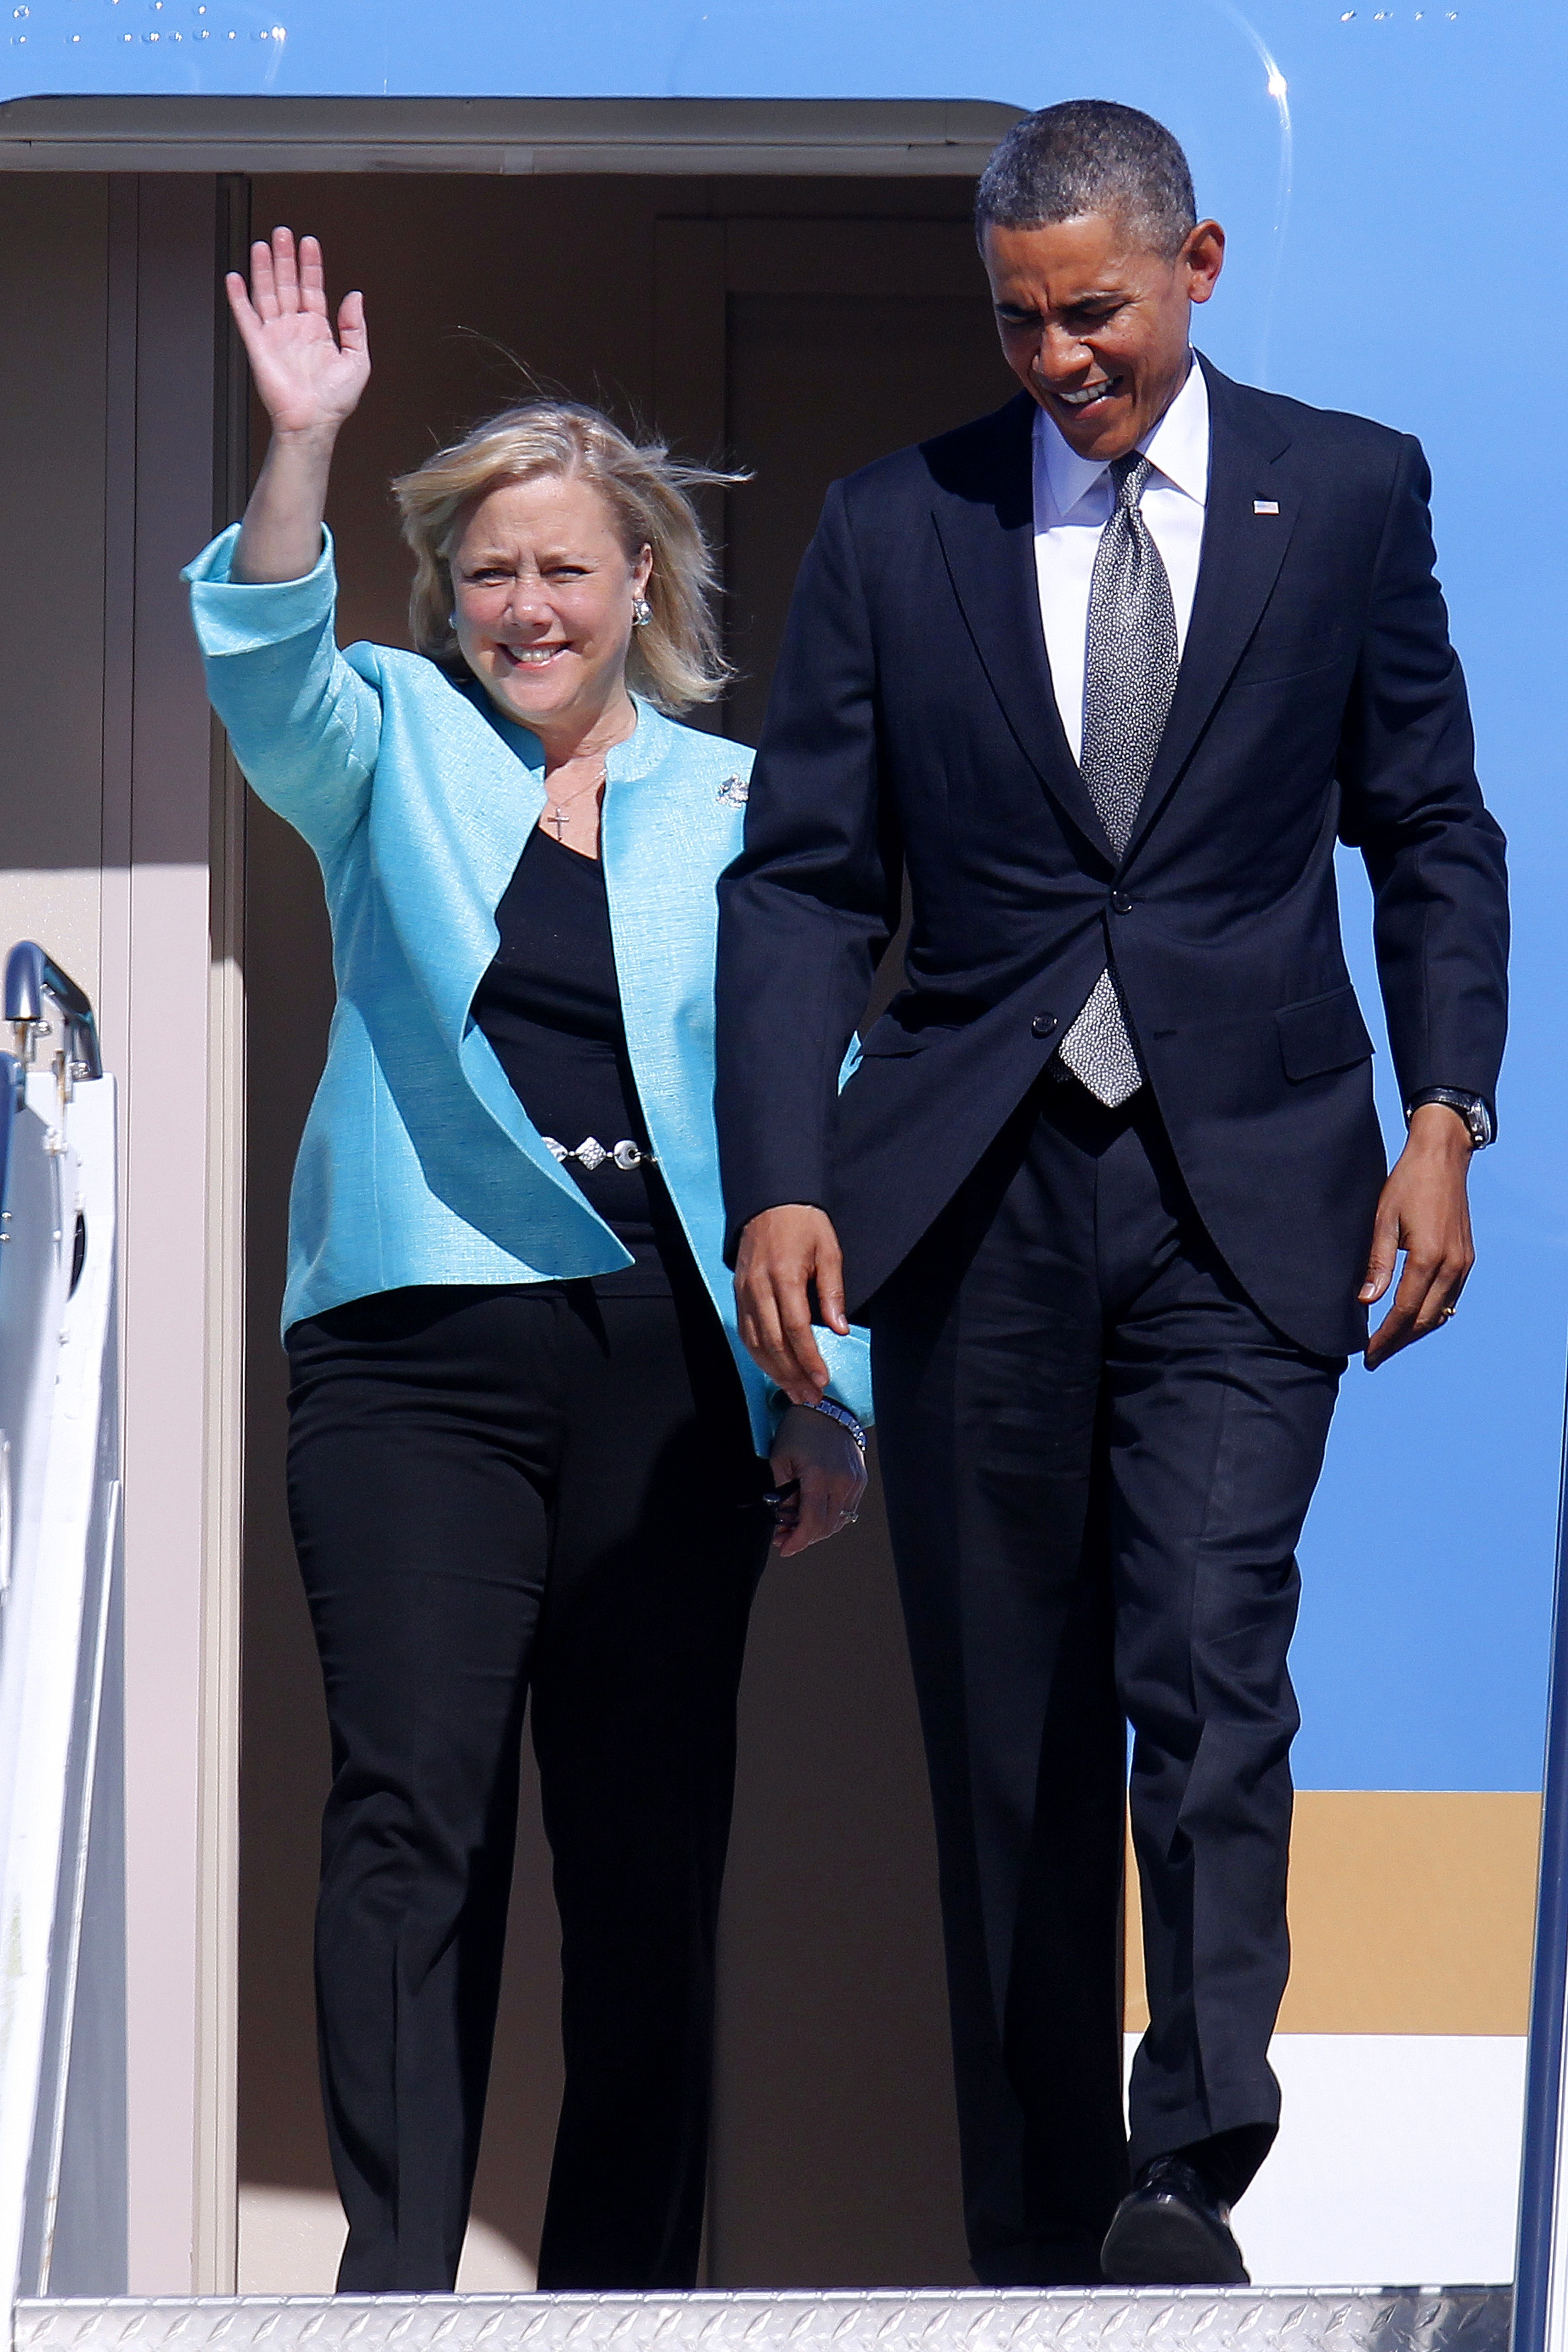 Sen. Mary Landrieu, D-La., shown here deplaning with President Obama in New Orleans on Friday, has introduced a keep-your-insurance plan to Congress.